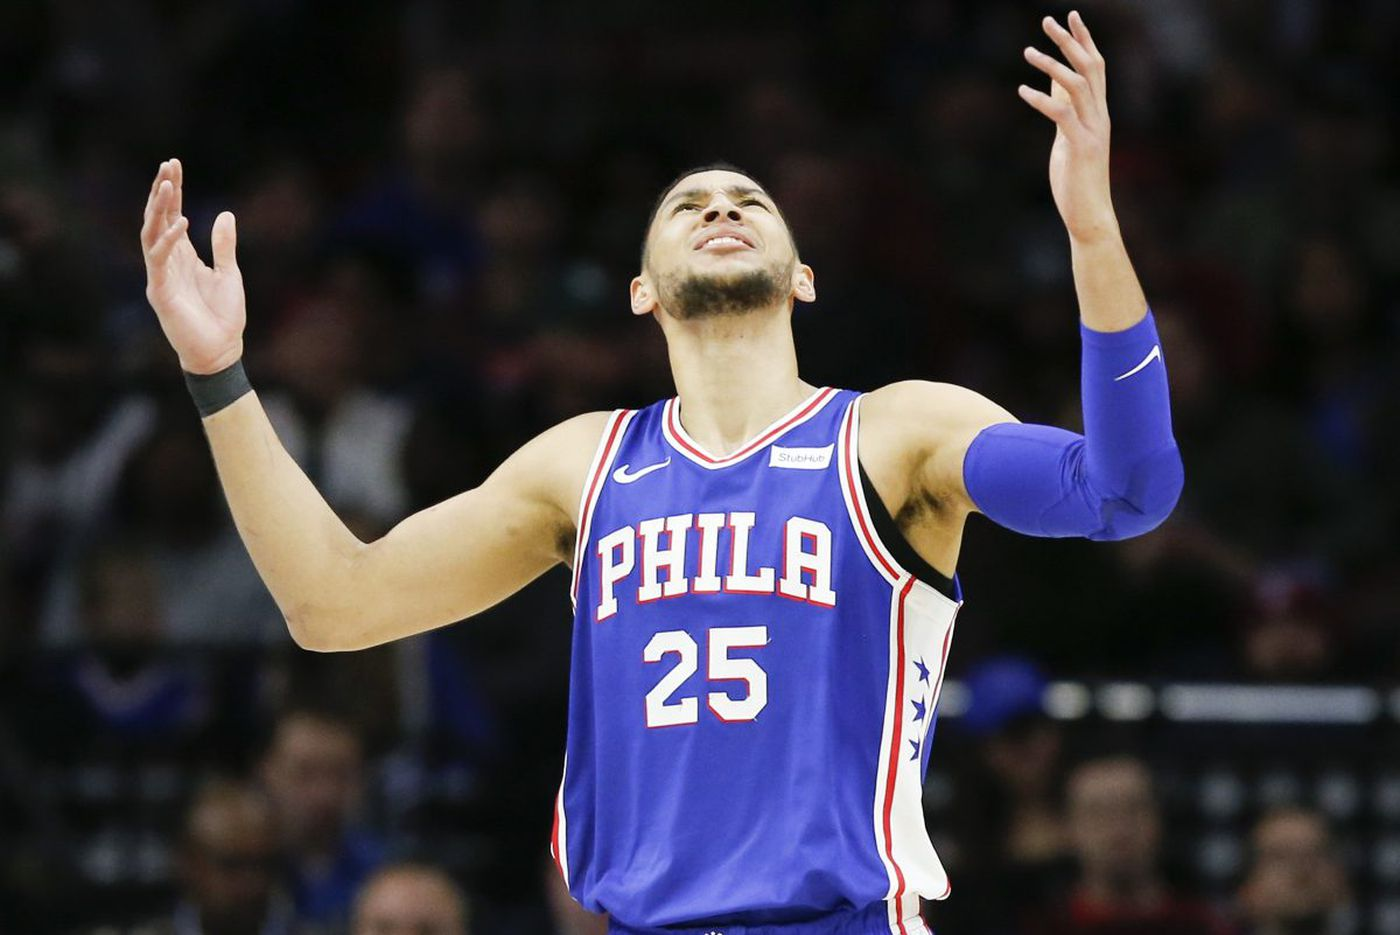 Ben Simmons denied spot on all-star team once again as Kemba Walker gets nod